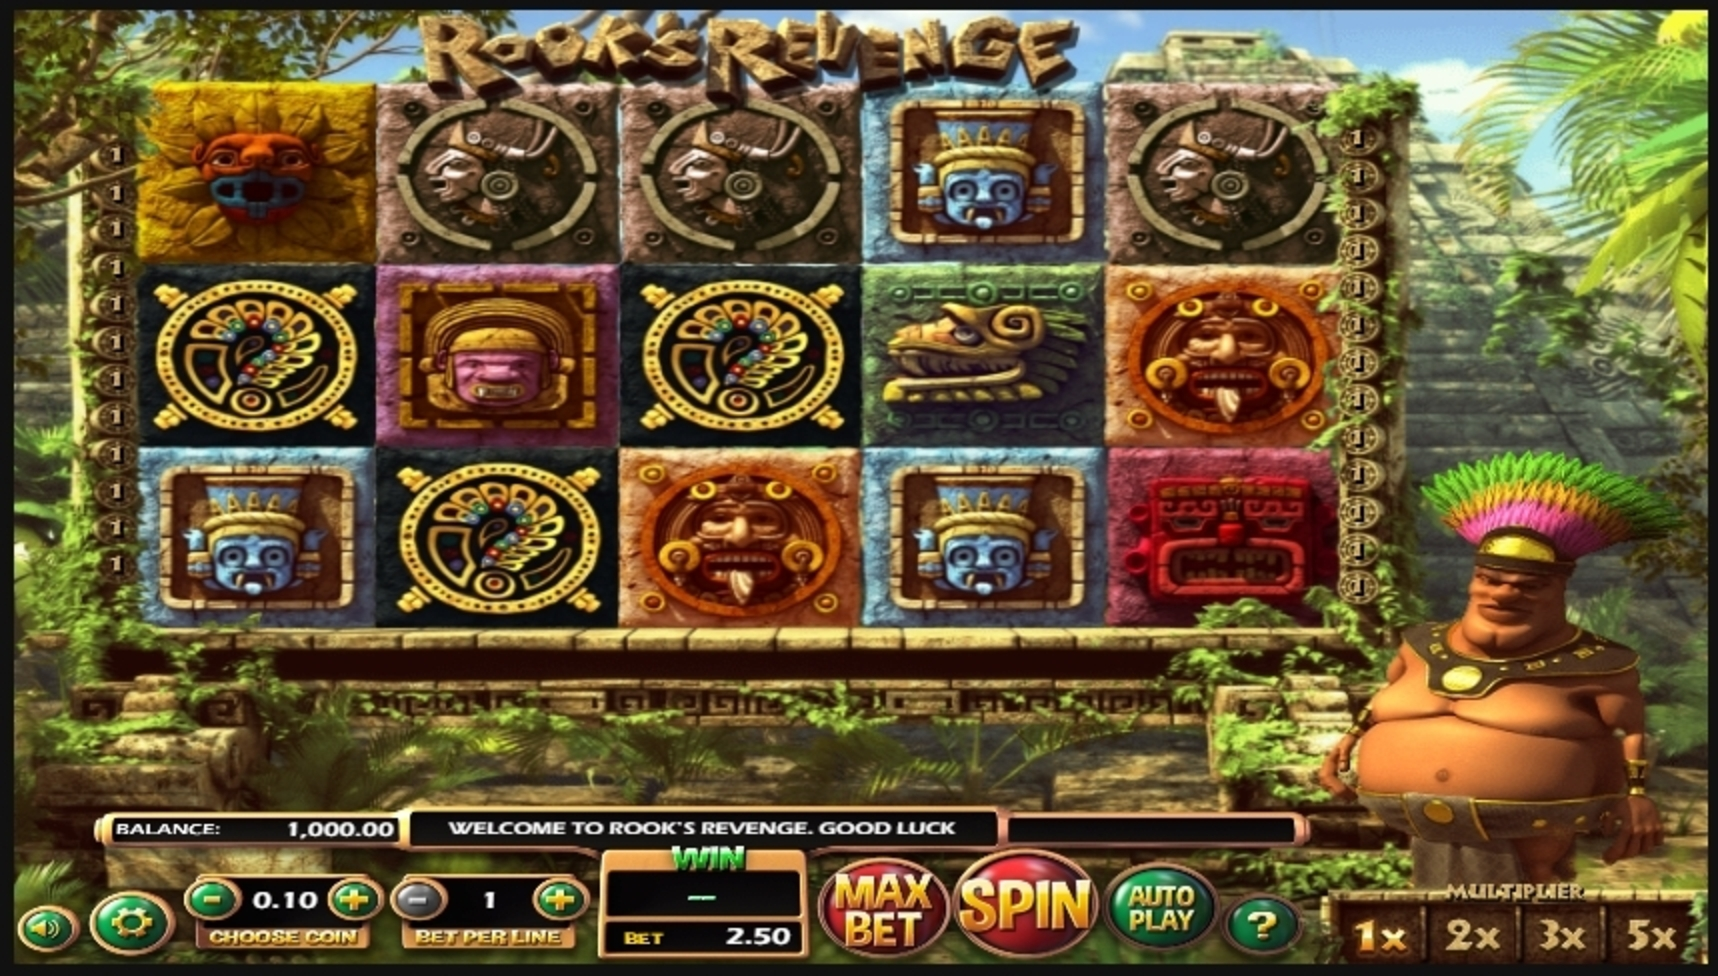 Reels in Rooks Revenge Slot Game by Betsoft